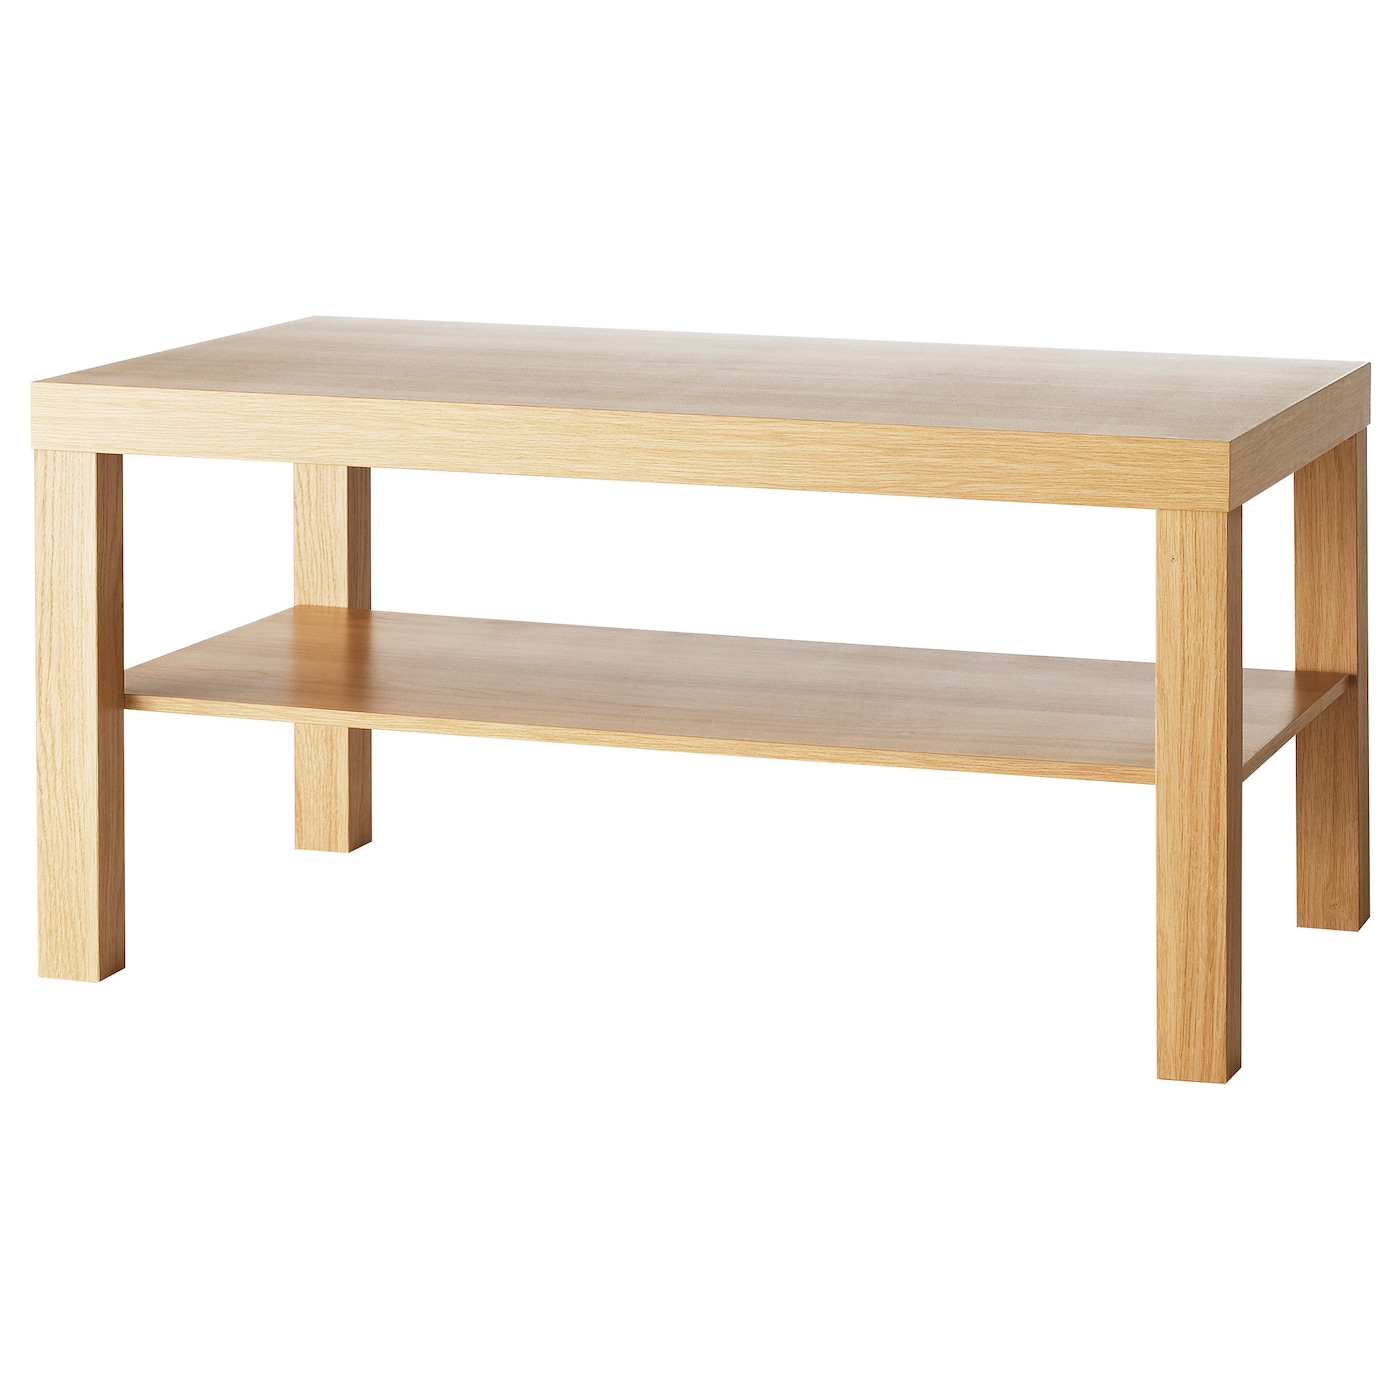 Lack coffee table oak effect 90x55 cm ikea for Ikea end tables salon